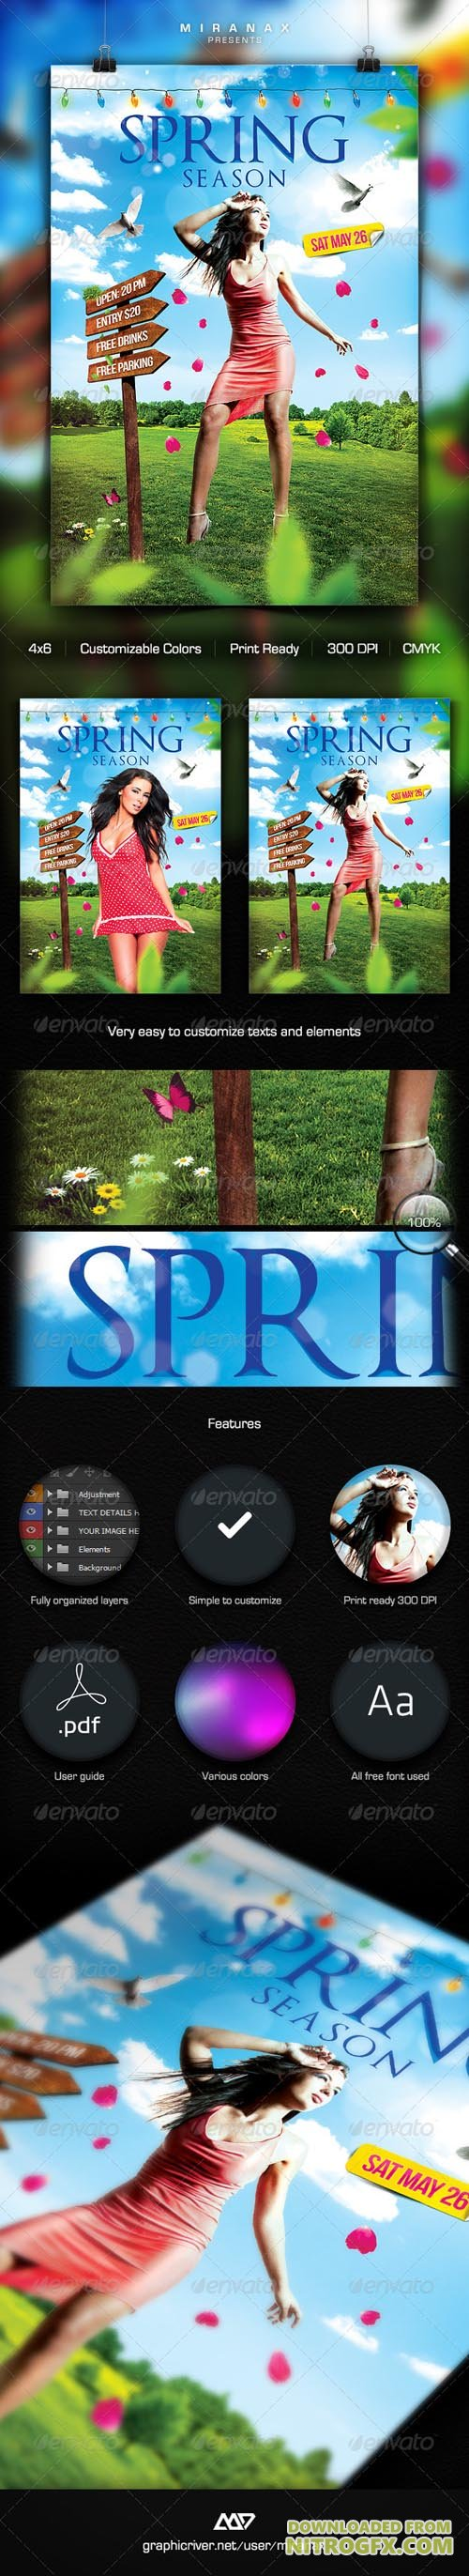 Spring Break - Summer Party Flyer Template 7329134